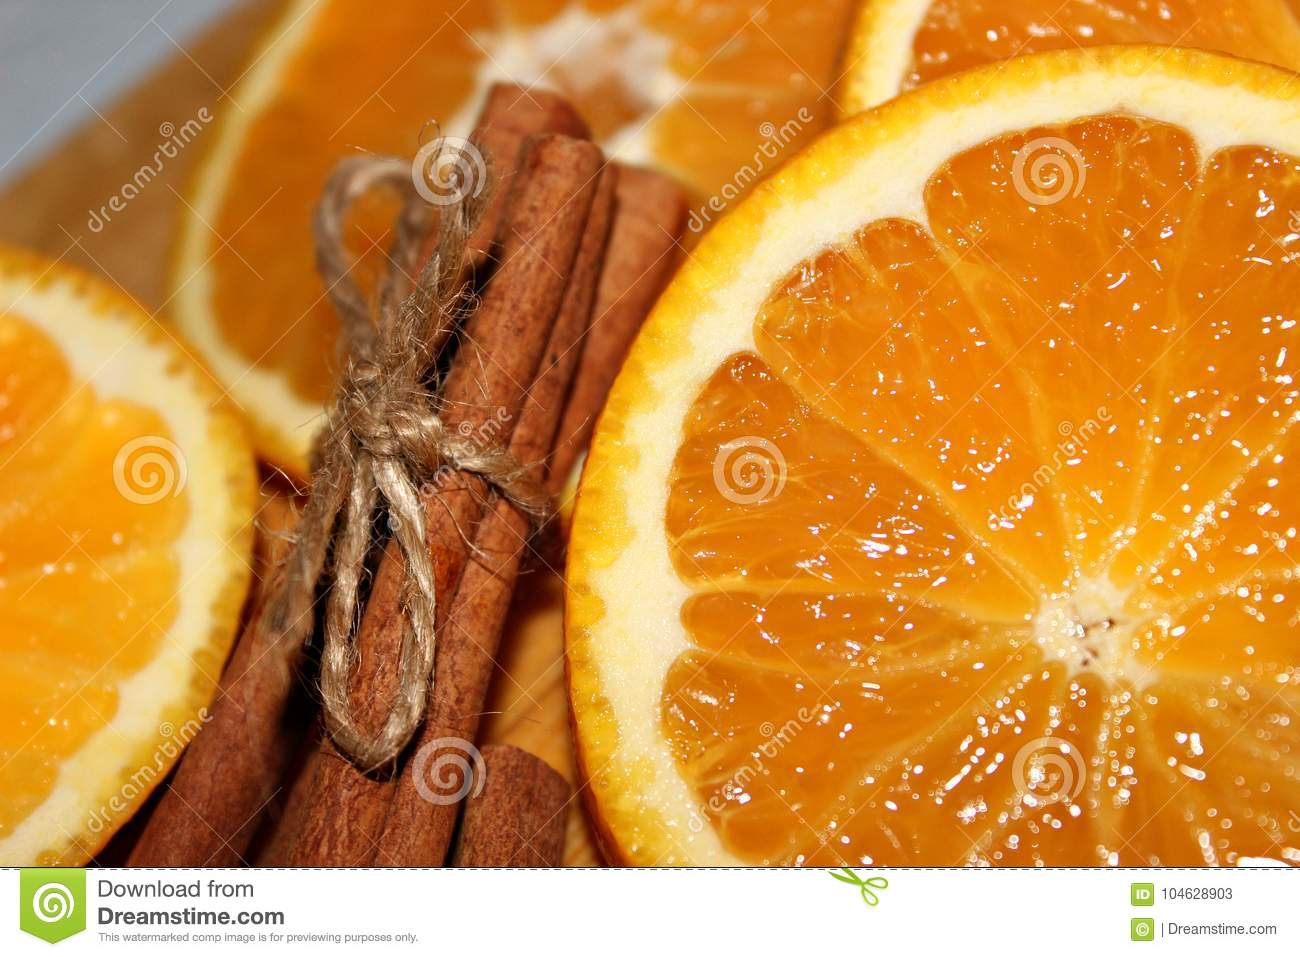 Orange with cinnamon close up